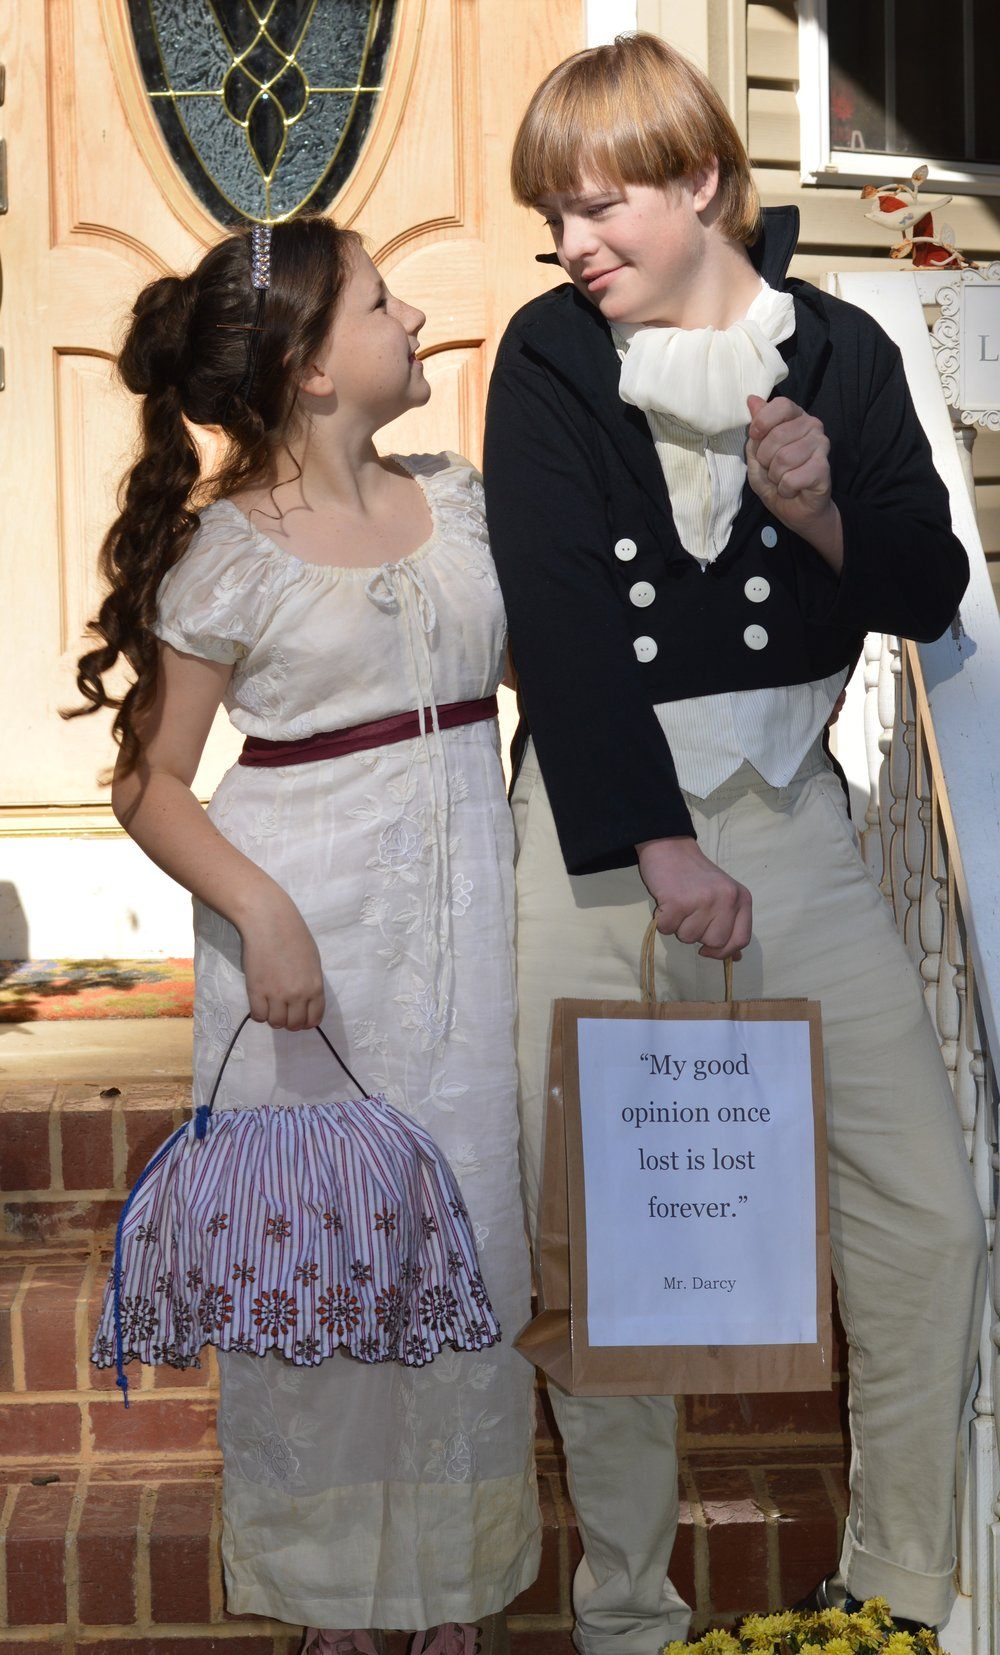 Susannah Pearce's children in Halloween costumes as Mr. Darcy and Elizabeth Bennett.